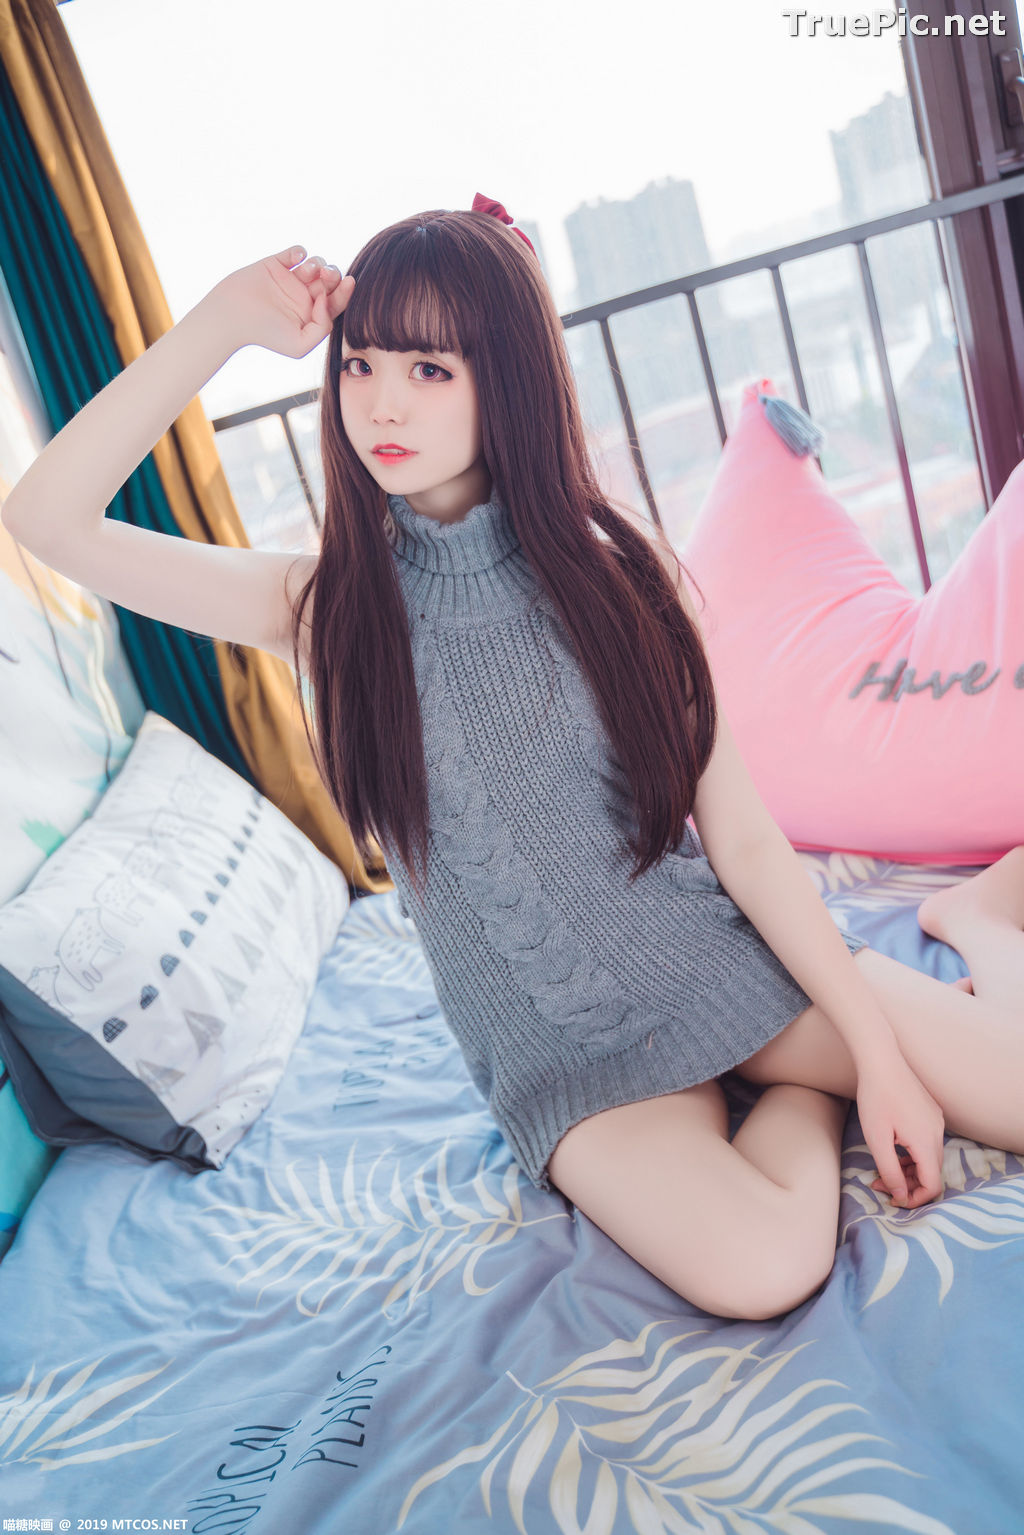 Image [MTCos] 喵糖映画 Vol.030 – Chinese Cute Model – Open Back Sweater - TruePic.net - Picture-18